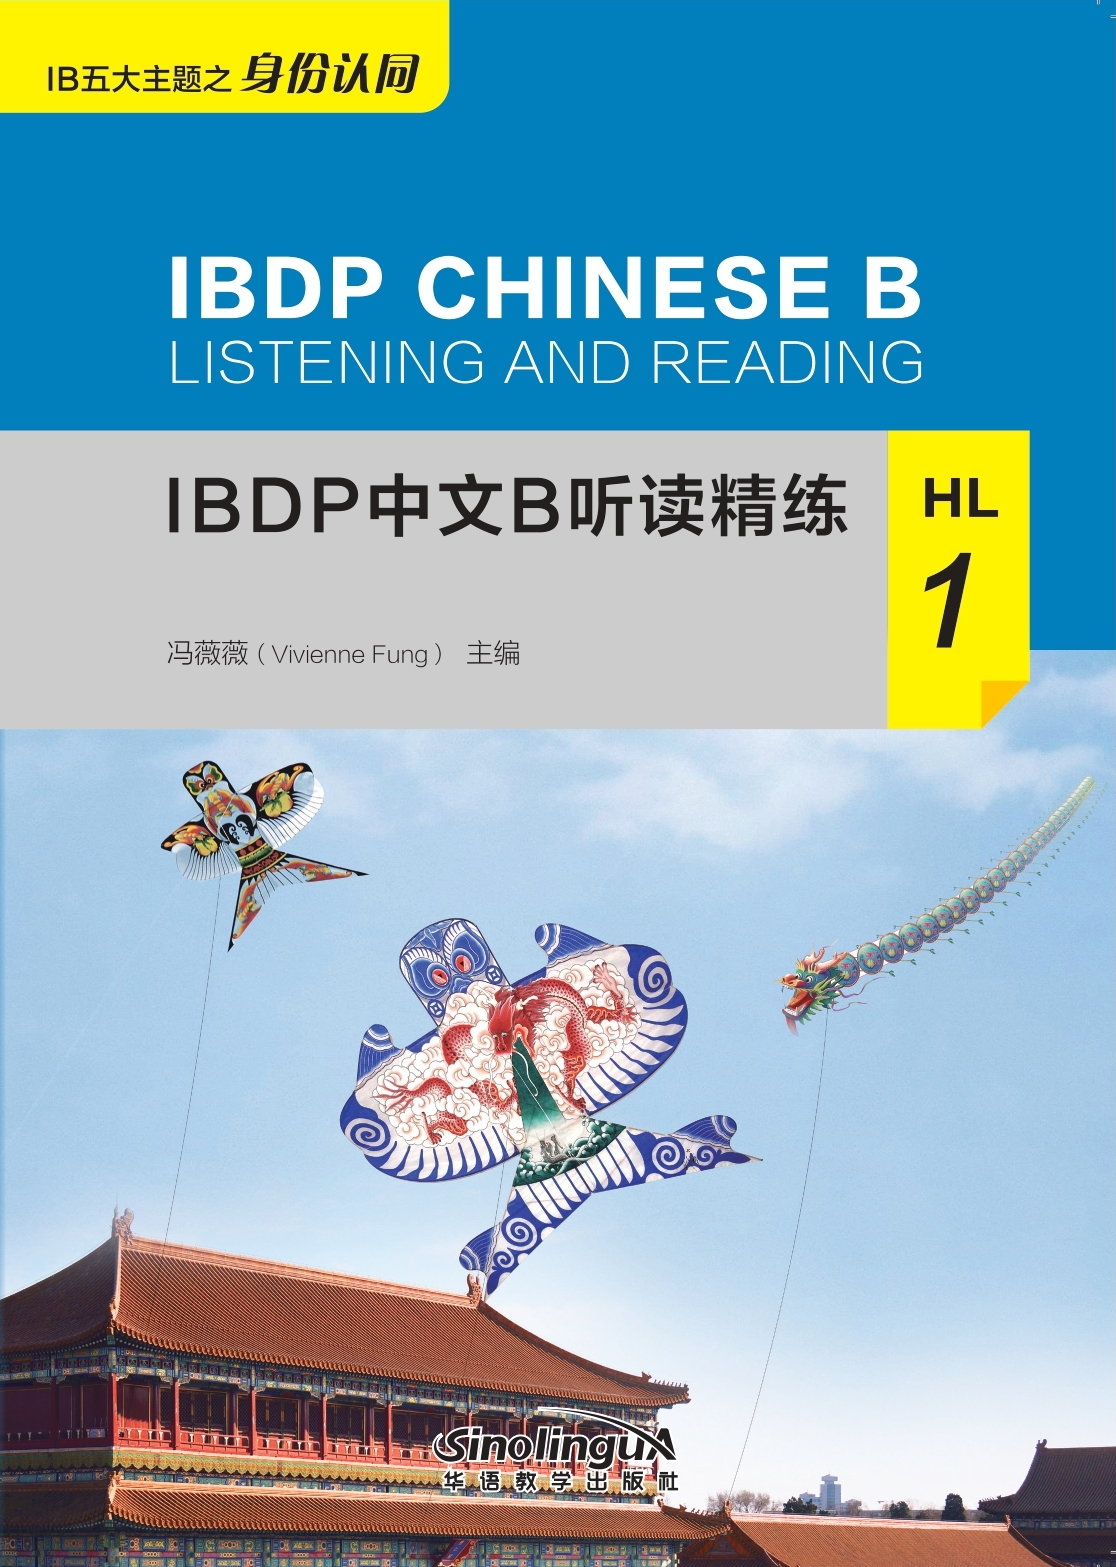 IBDP中文B听读精练HL 1  IBDP Chinese B Listening and Reading HL 1